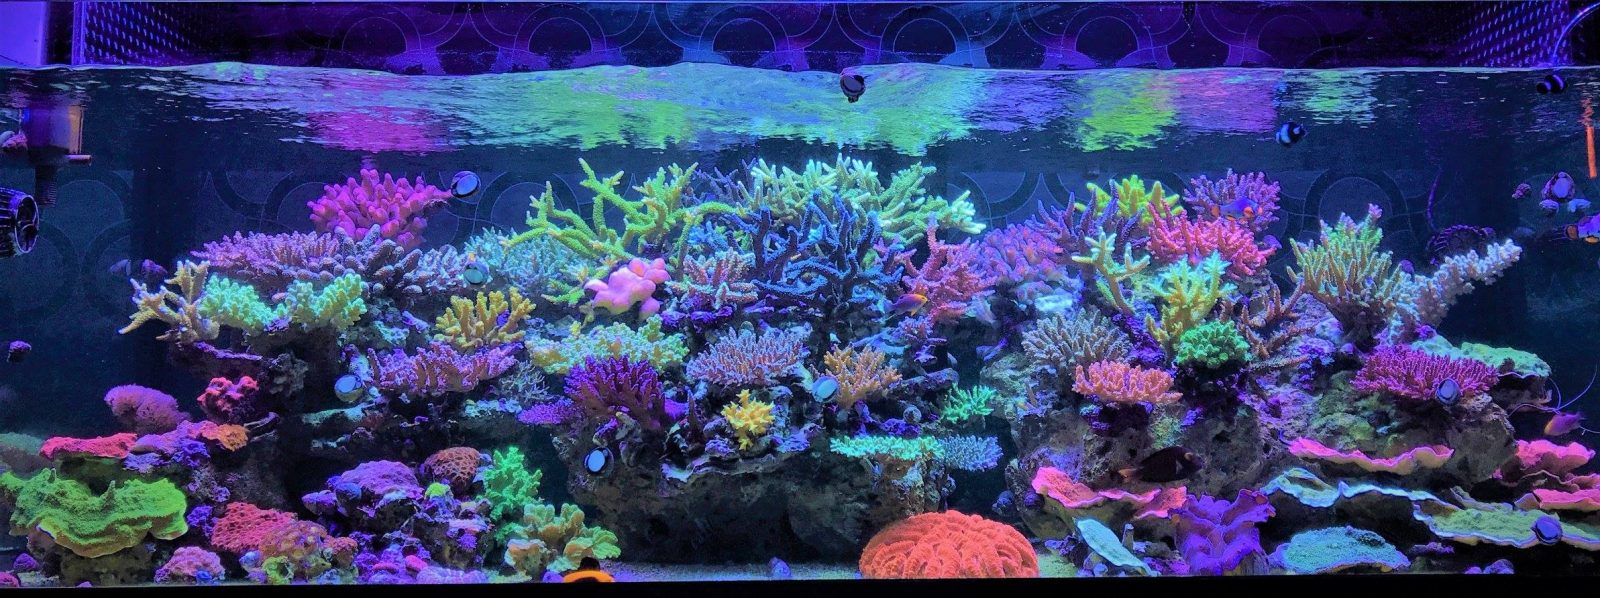 orphek beste aquariumverlichting 2020